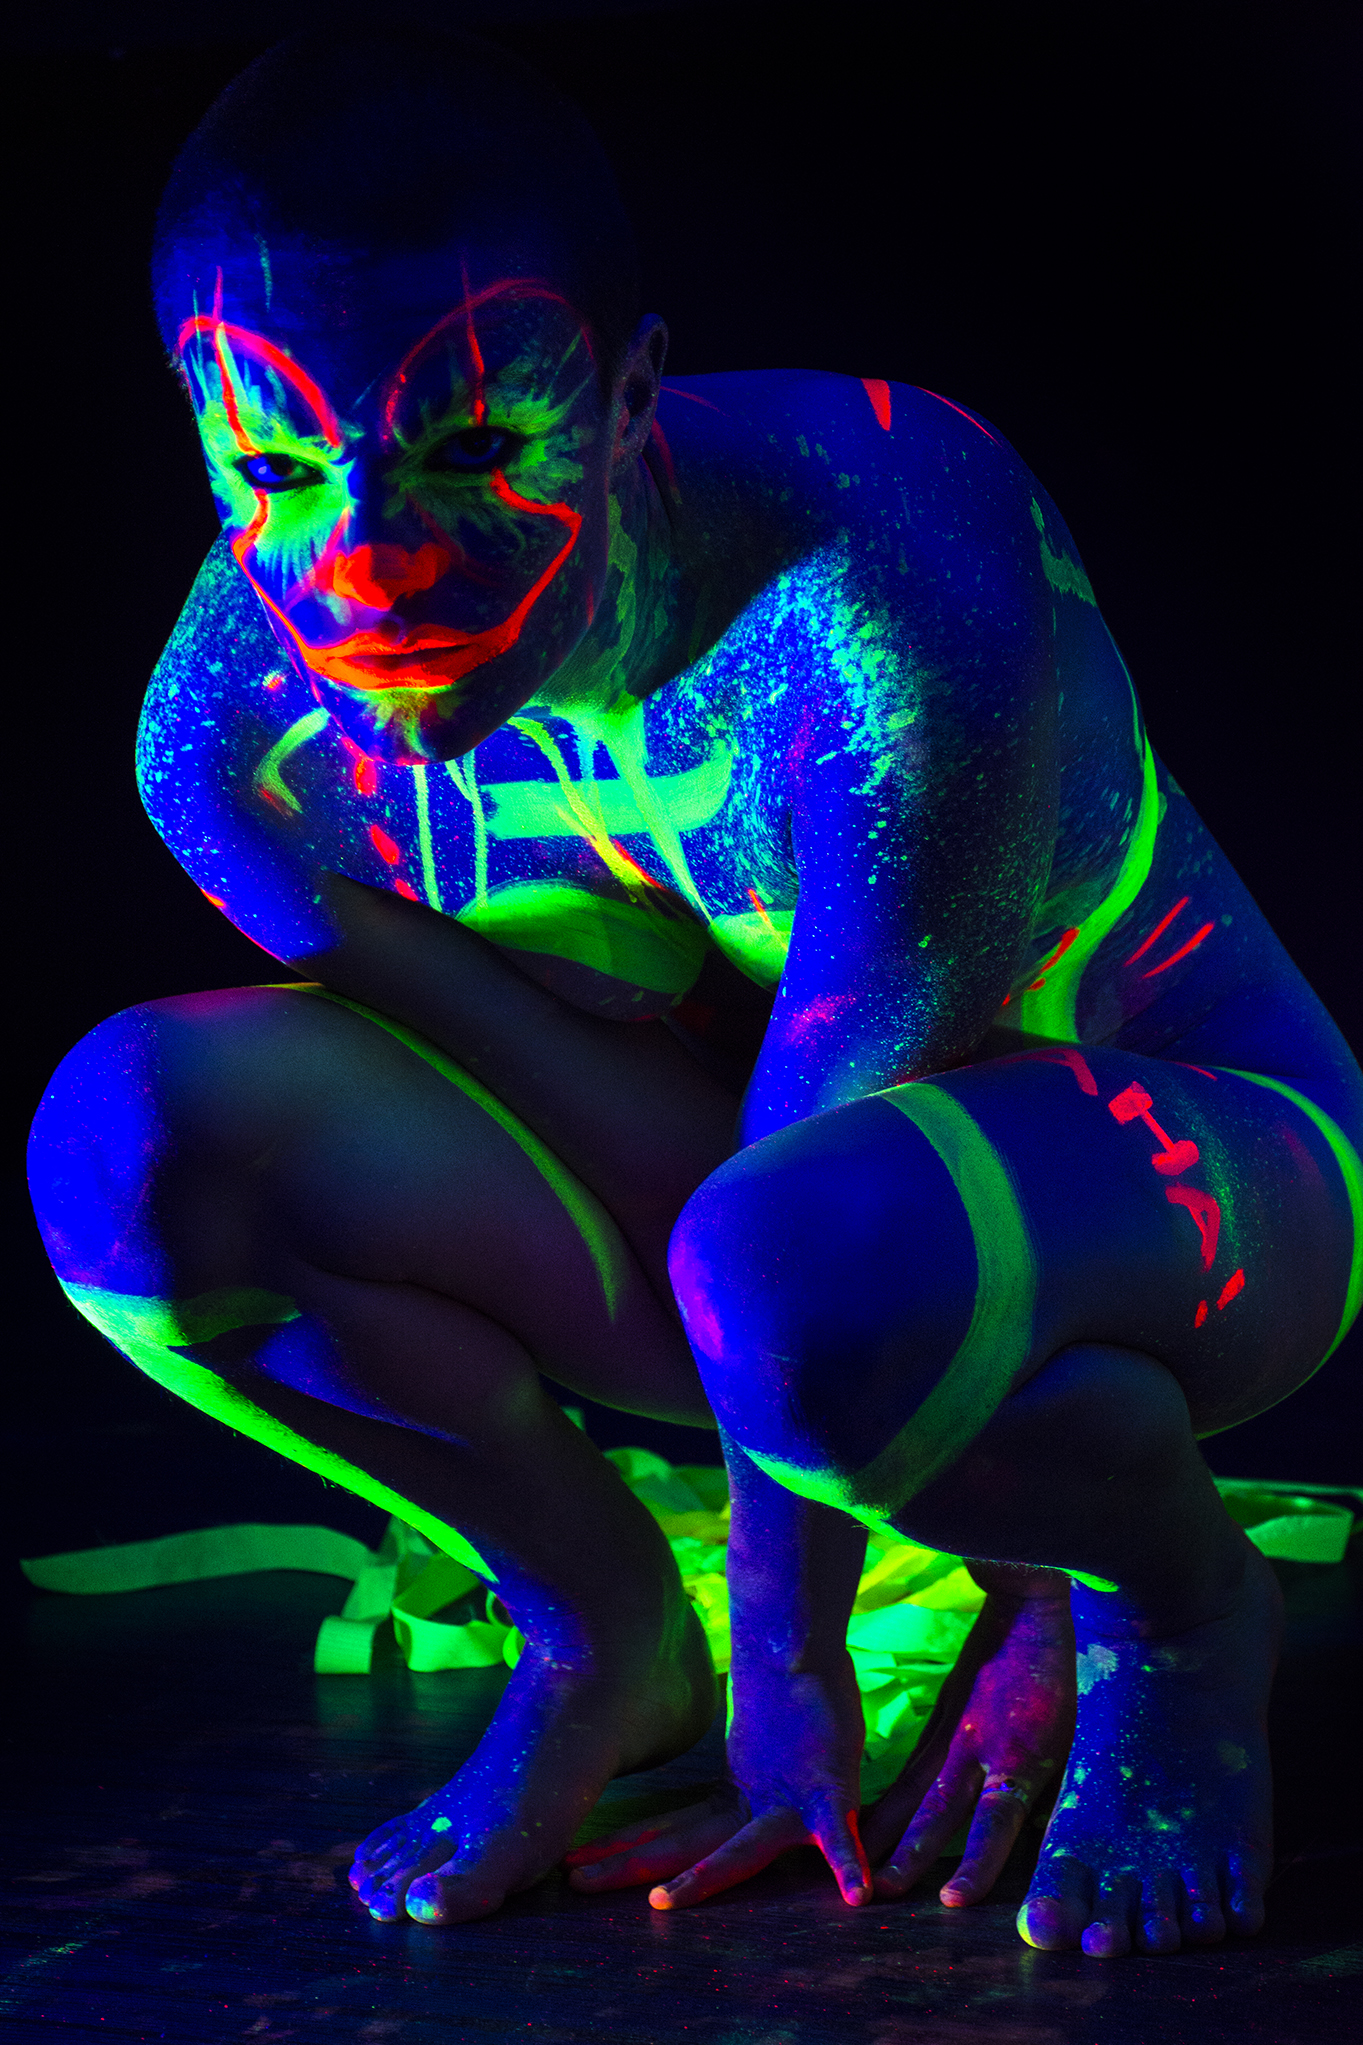 Lilith modelling for Neon Naked.